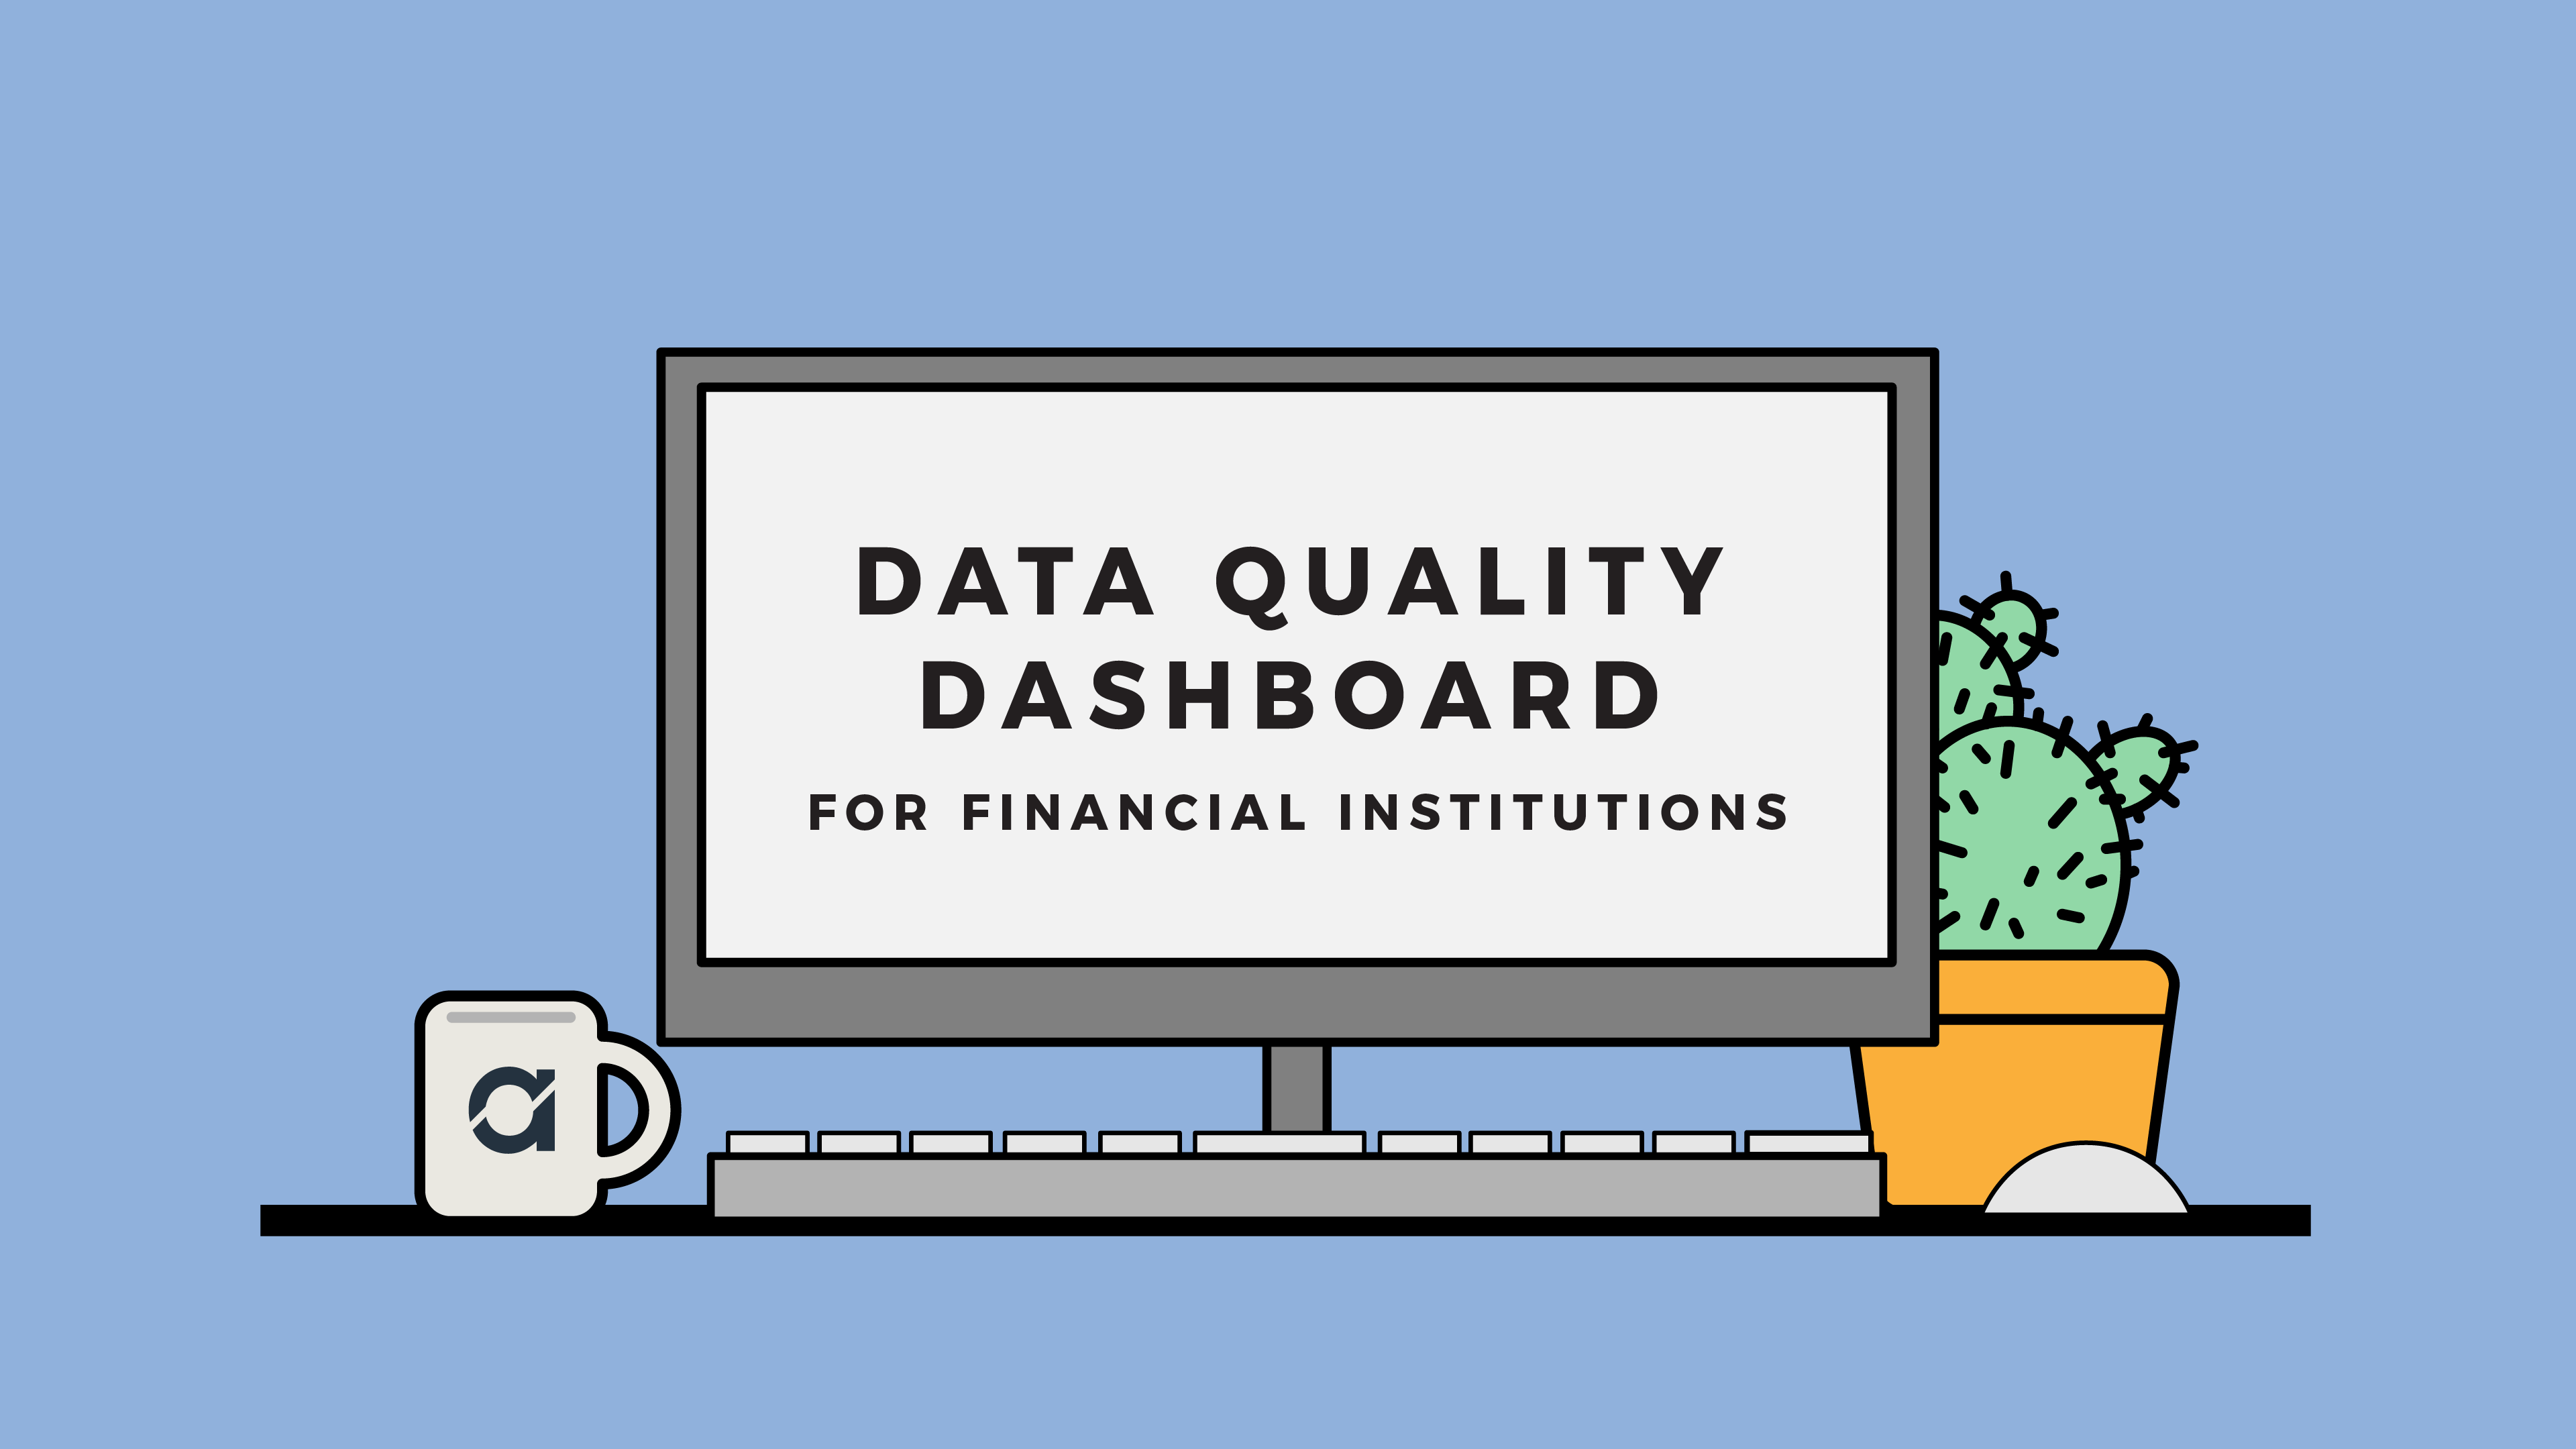 data quality dashboard for financial institutions